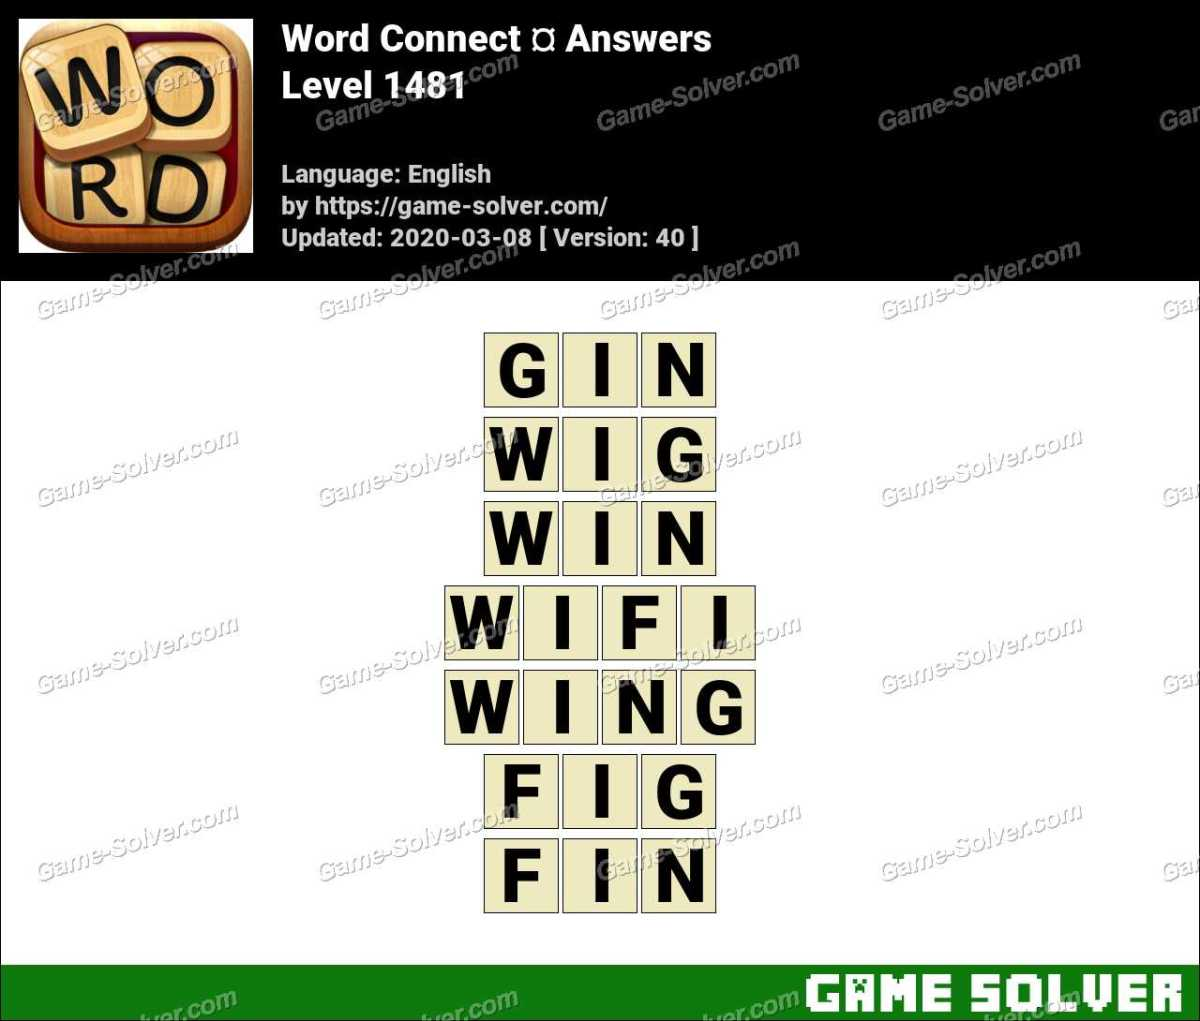 Word Connect Level 1481 Answers